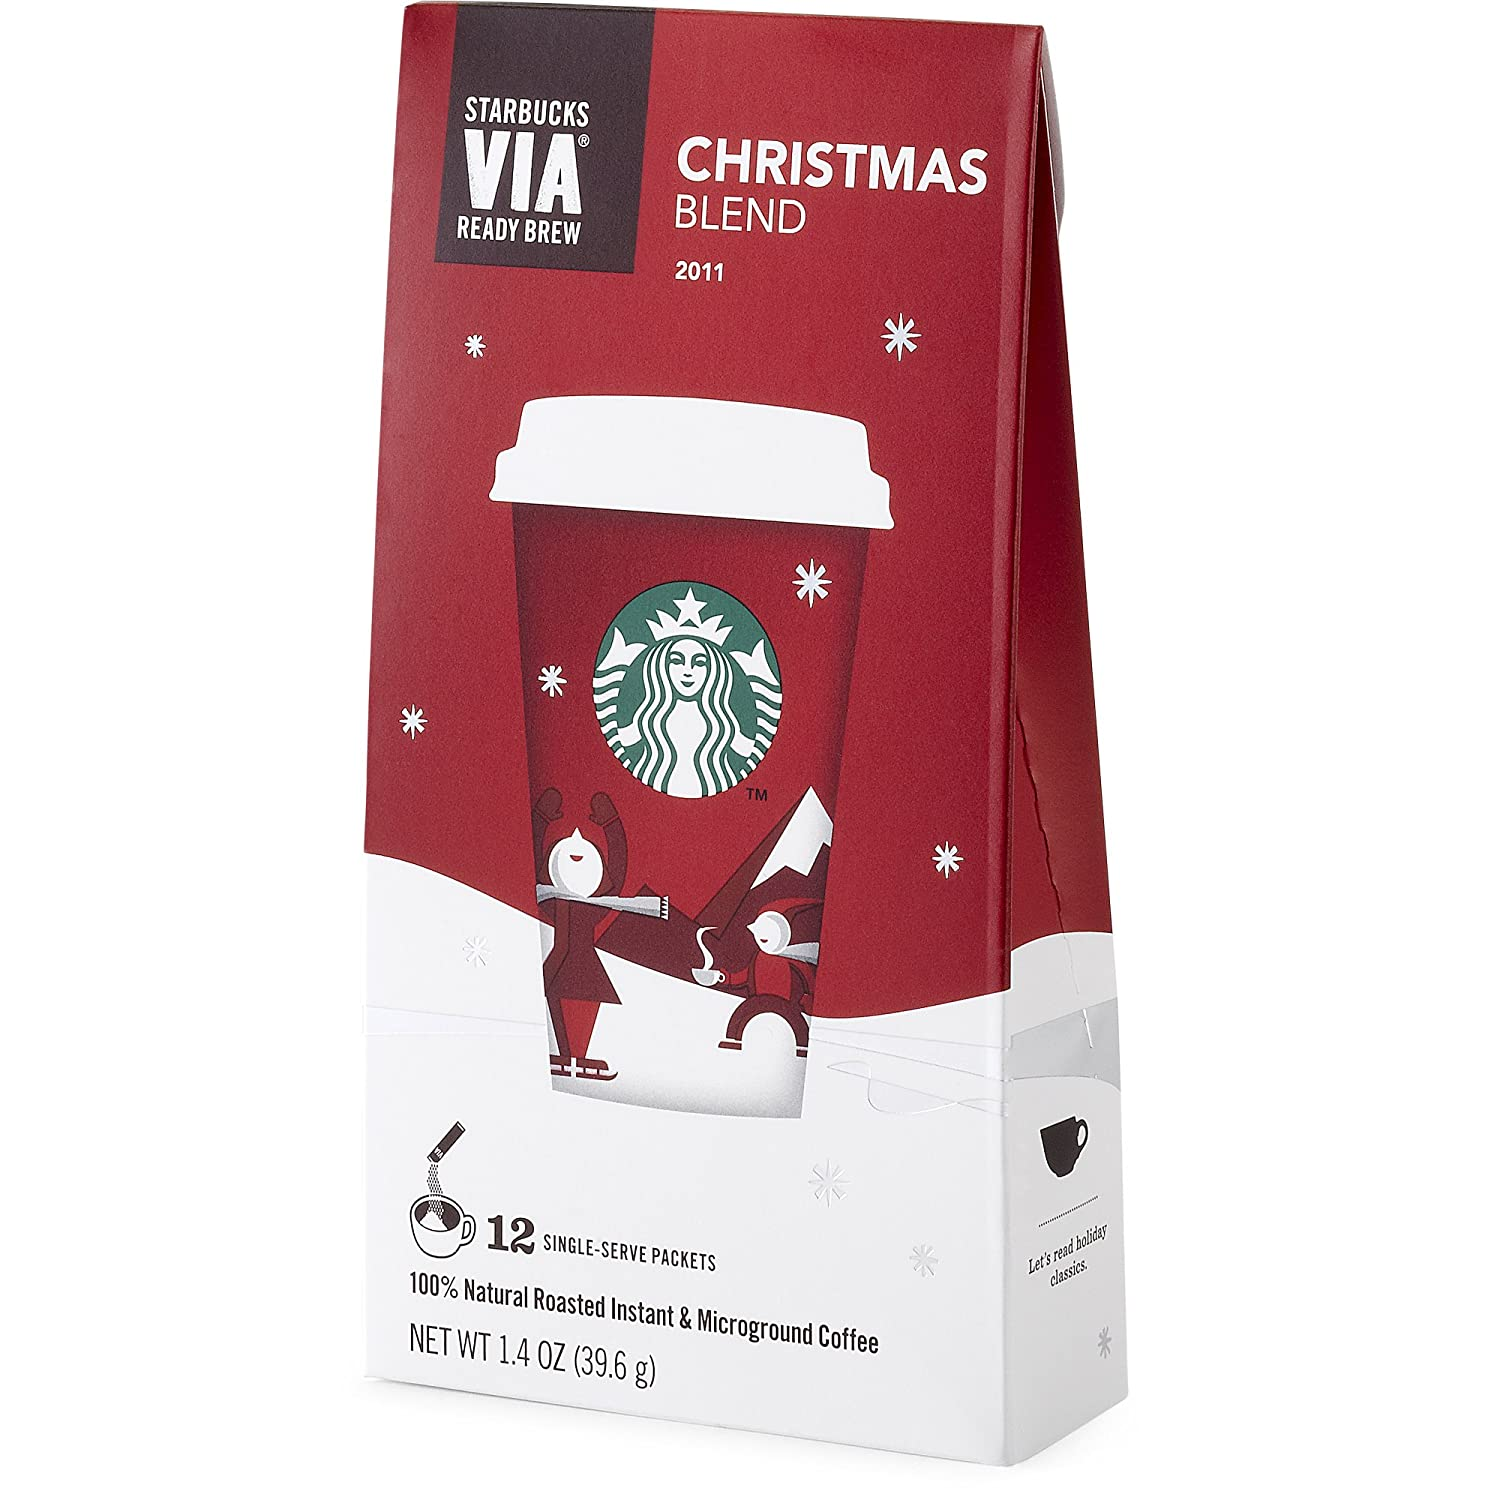 Amazon.com : Starbucks VIA® Christmas Blend Coffee : Instant ...